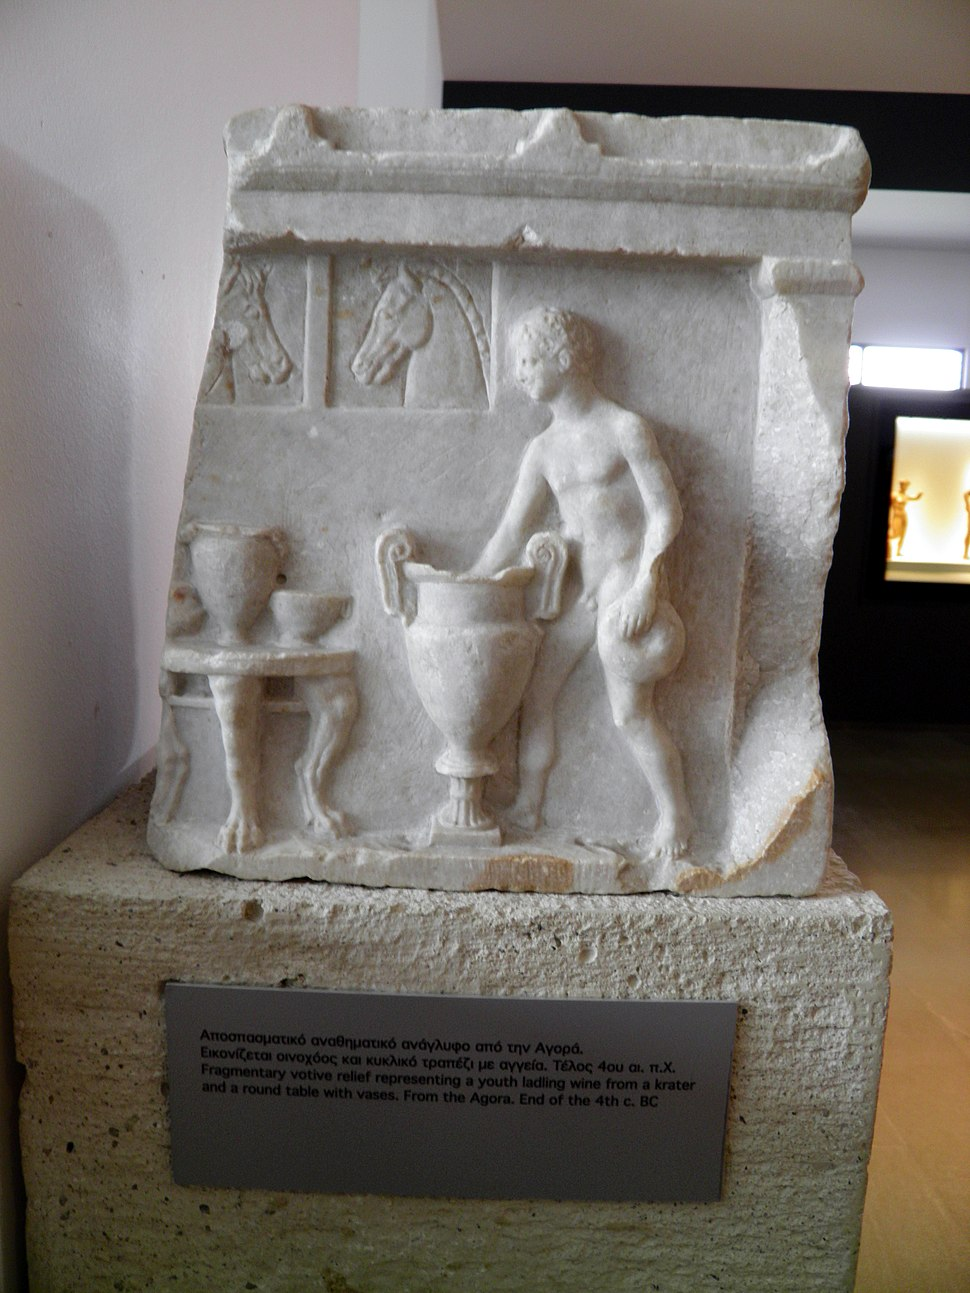 Framentuary votive relief representing a youth ladling wine for a krater and a round table with vases, from the Agora, end of 4th c. BC, Archaeological Museum, Pella (7065345633)